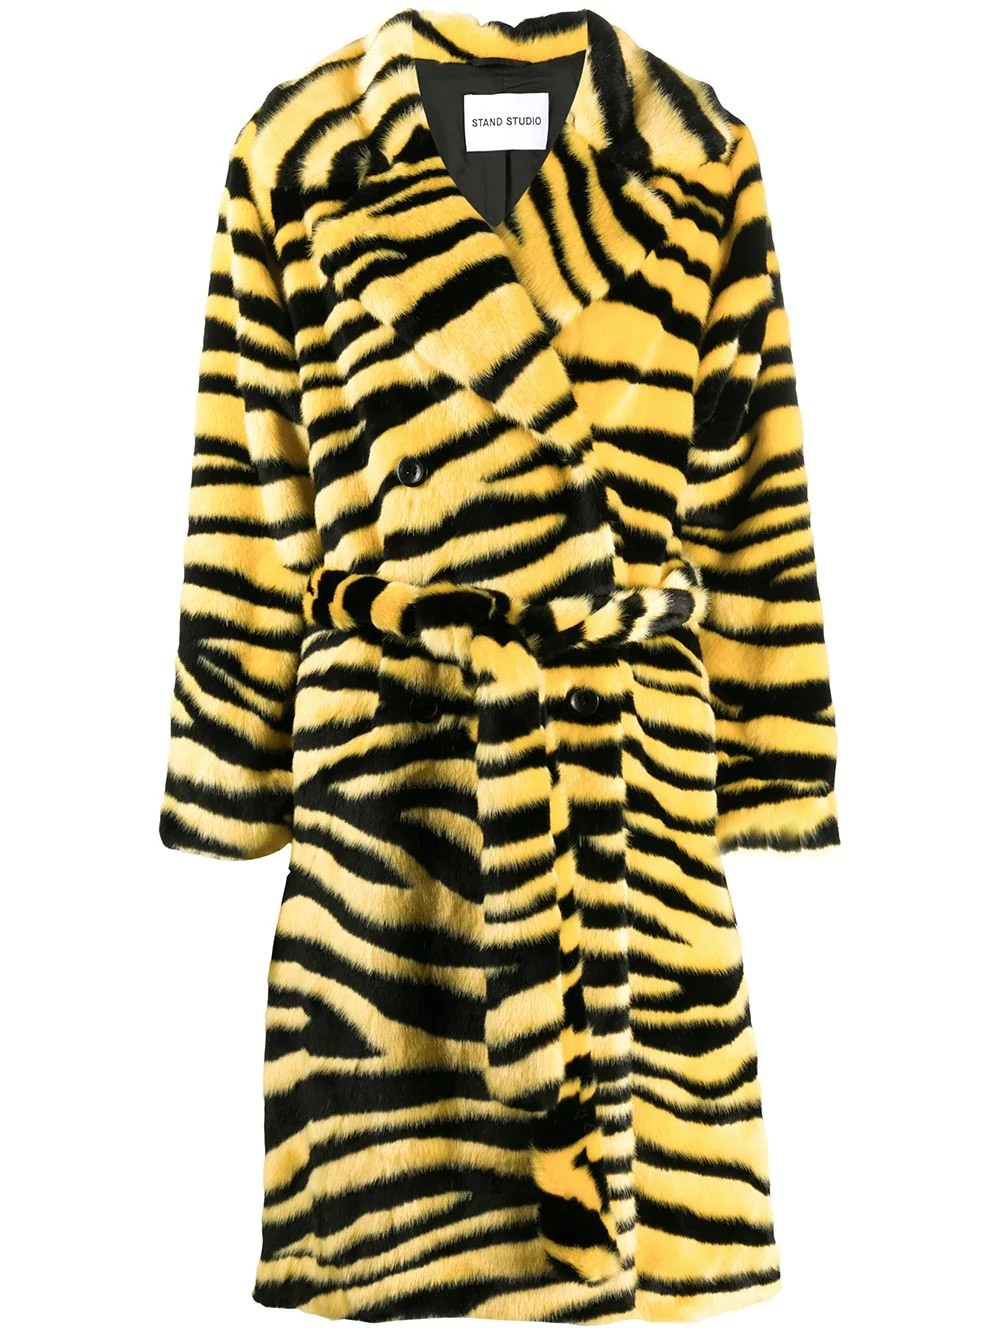 61174 9090 41000 BLACK YELLOW ZEBRA